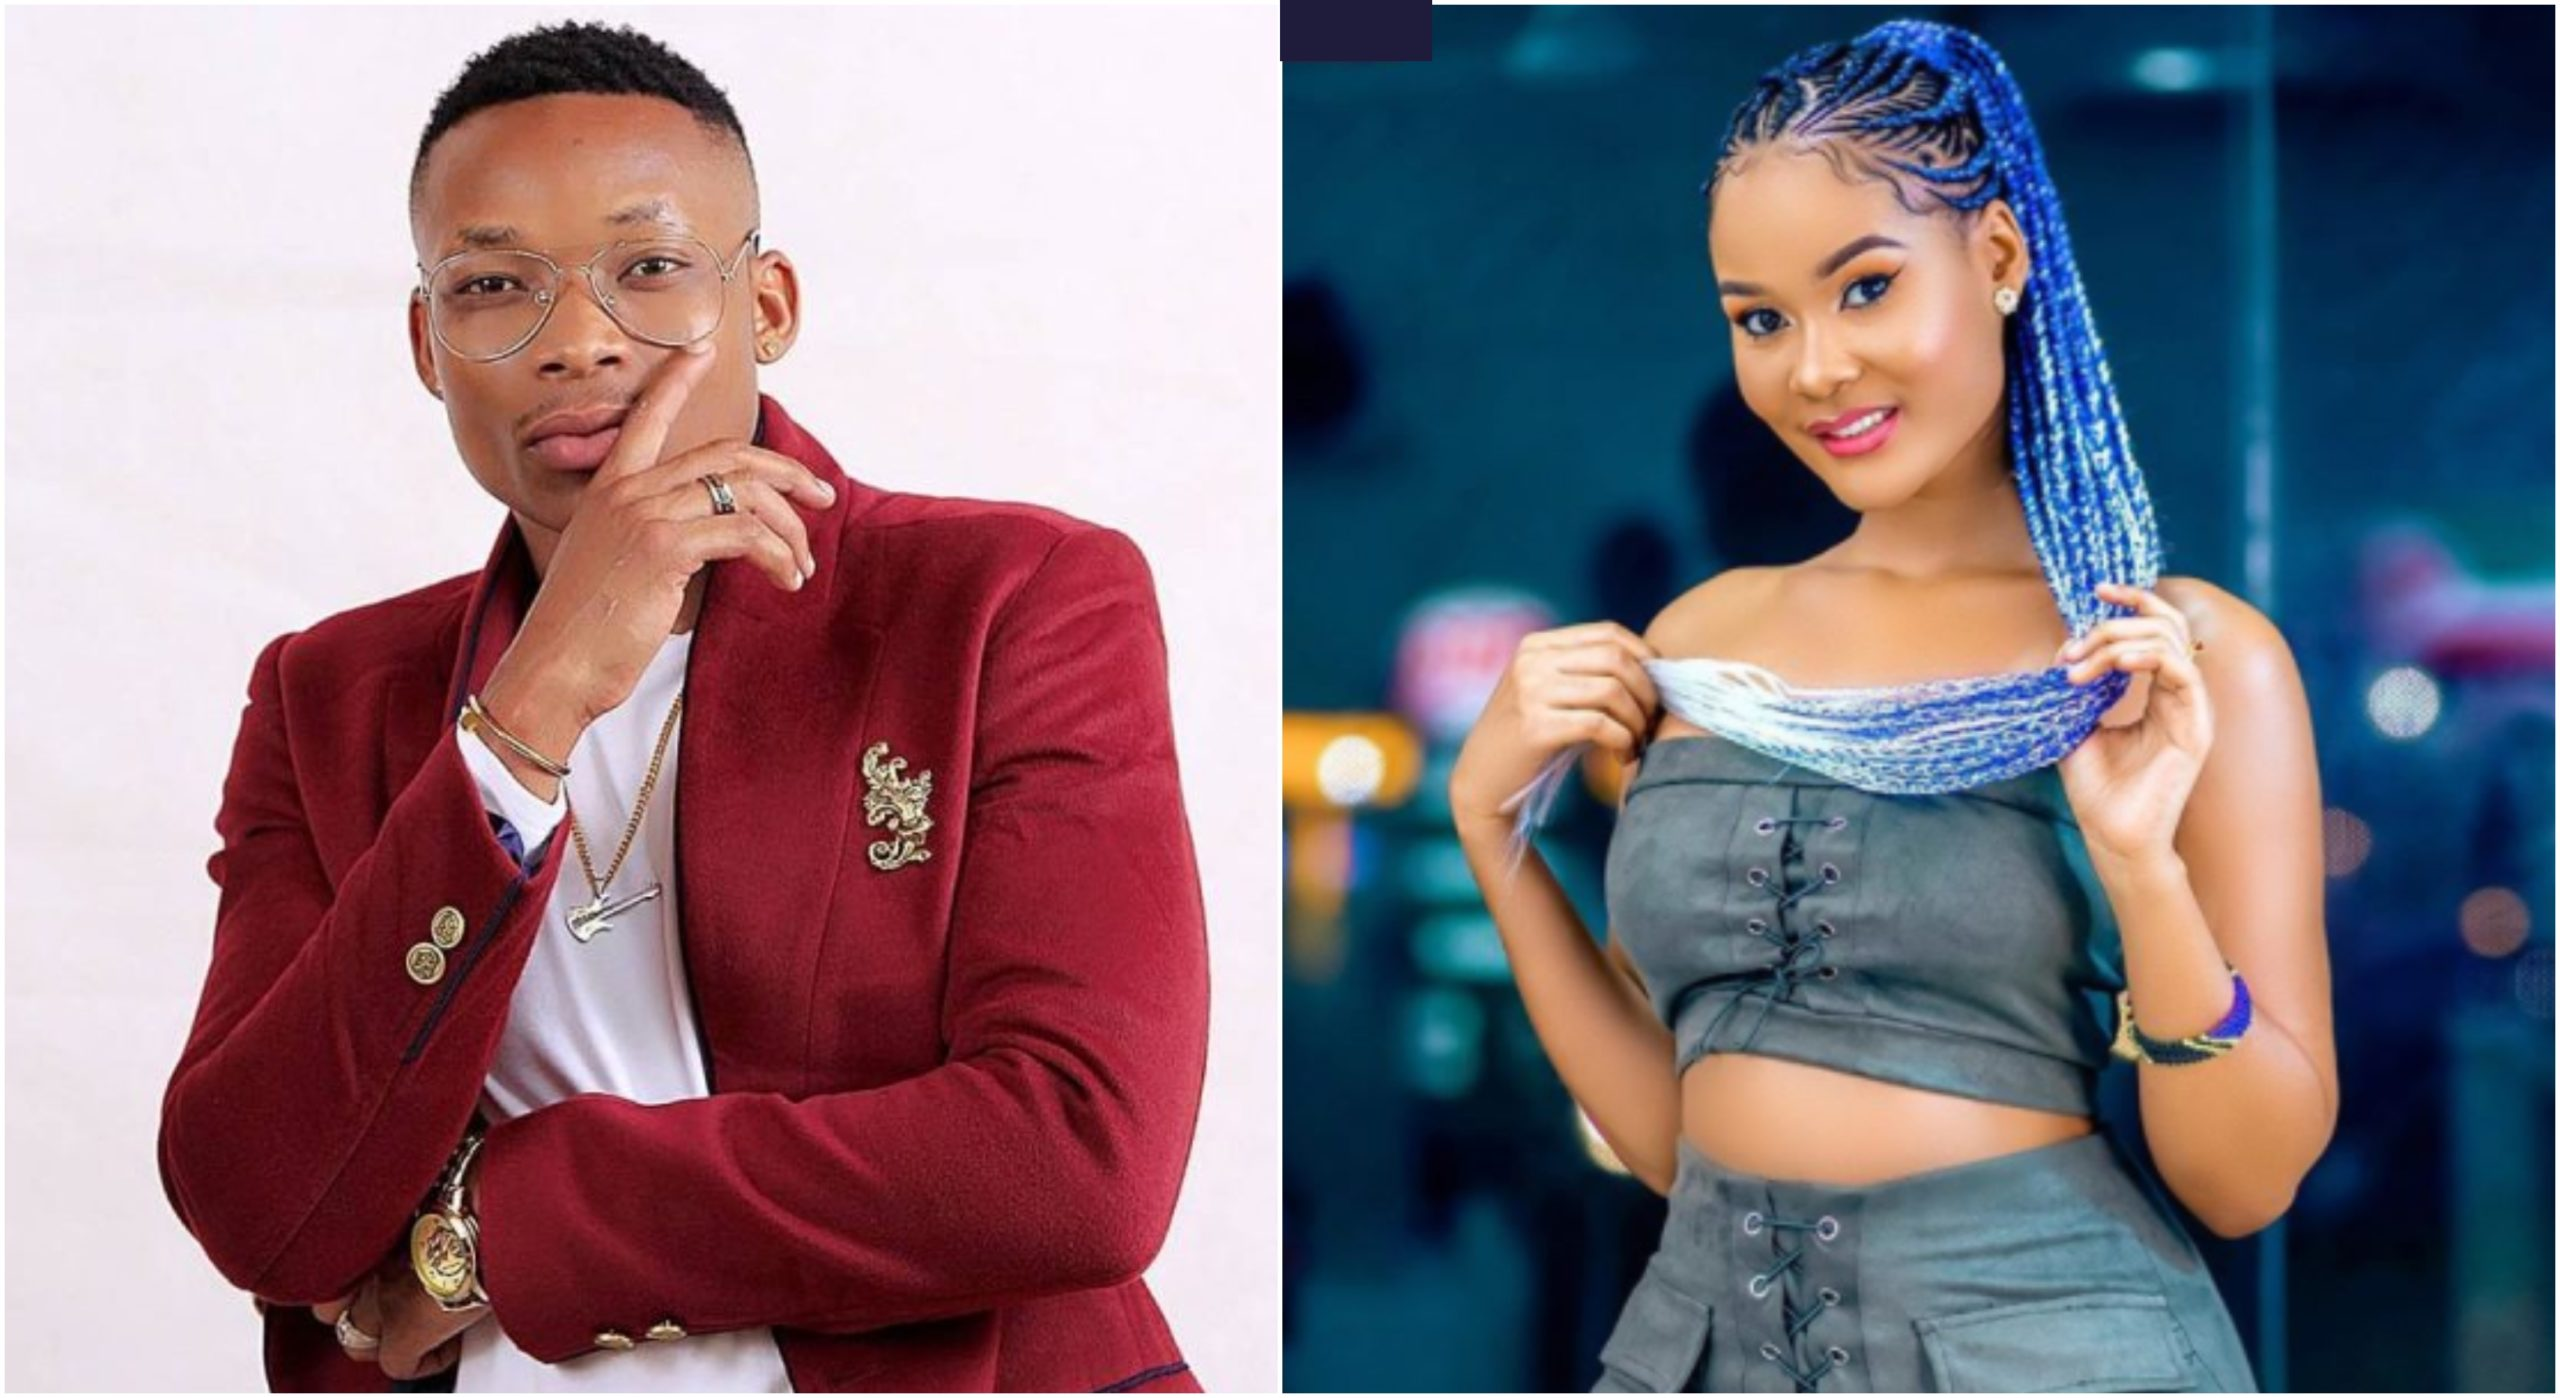 Intimate video of Hamisa Mobetto and Otile Brown raises eyebrows